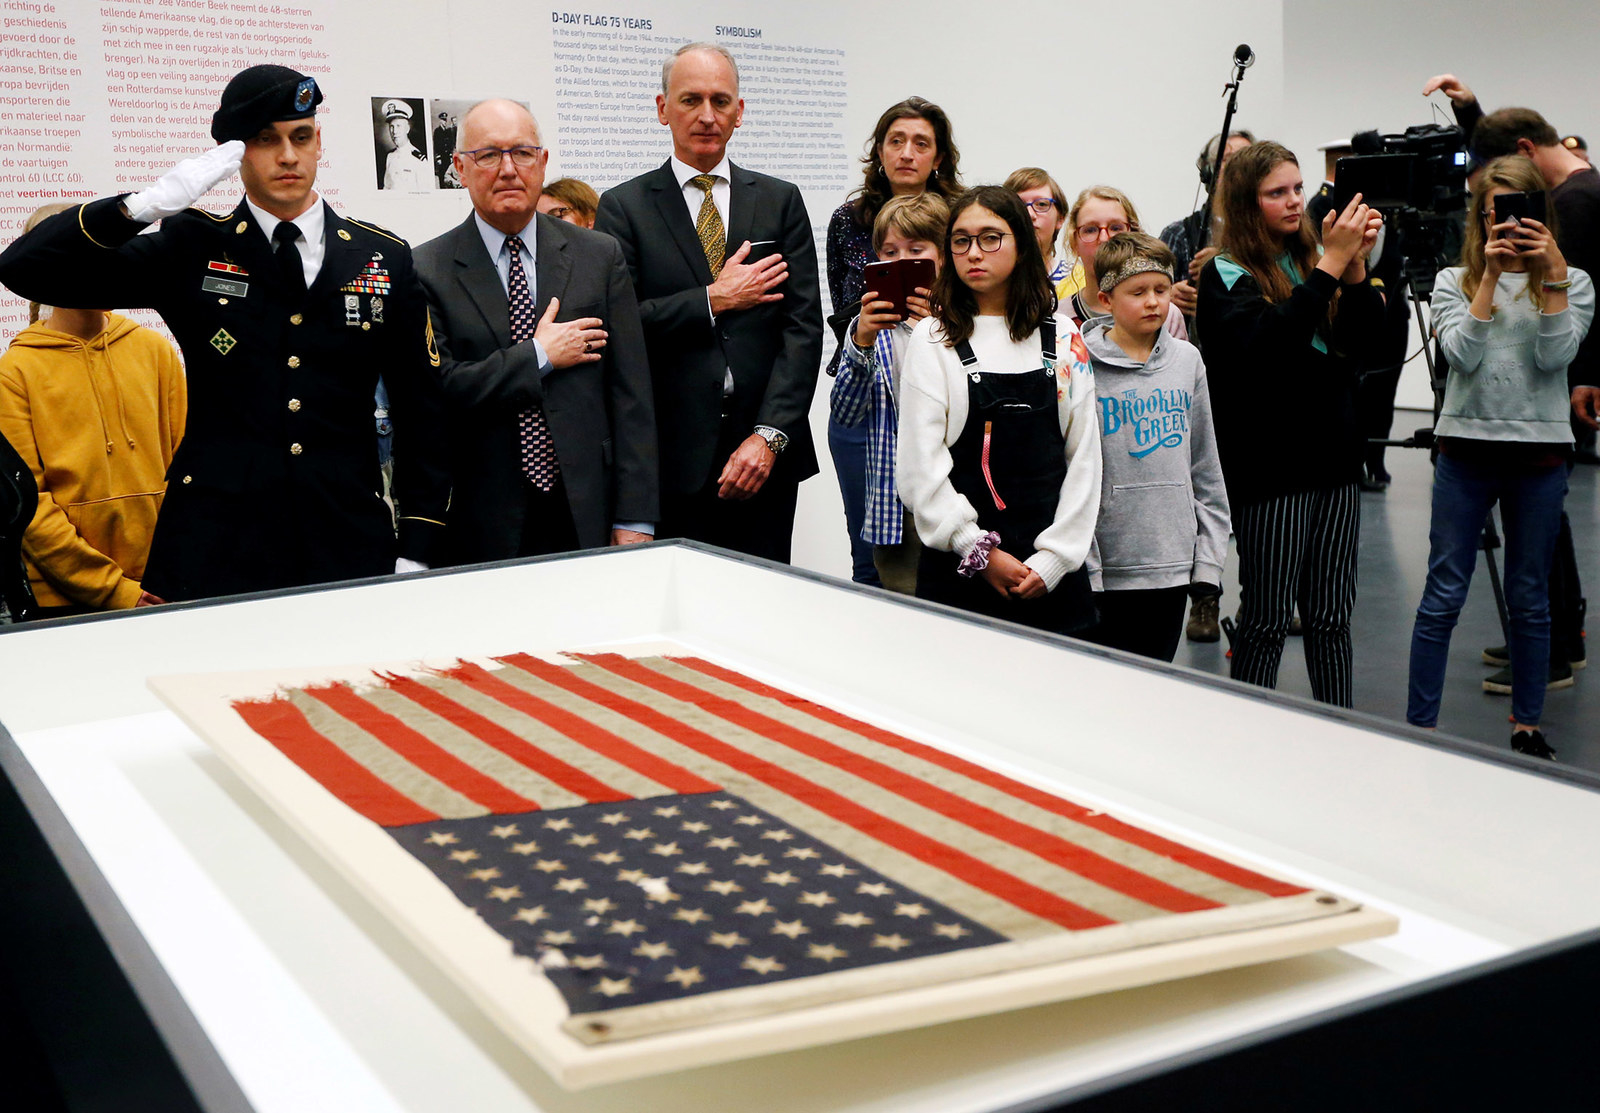 US Ambassador Pete Hoekstra unveils an American flag from Navy ship LCC 60 that led the US invasion fleet at Normandy's Utah Beach, in Rotterdam, Netherlands, on Feb. 4.